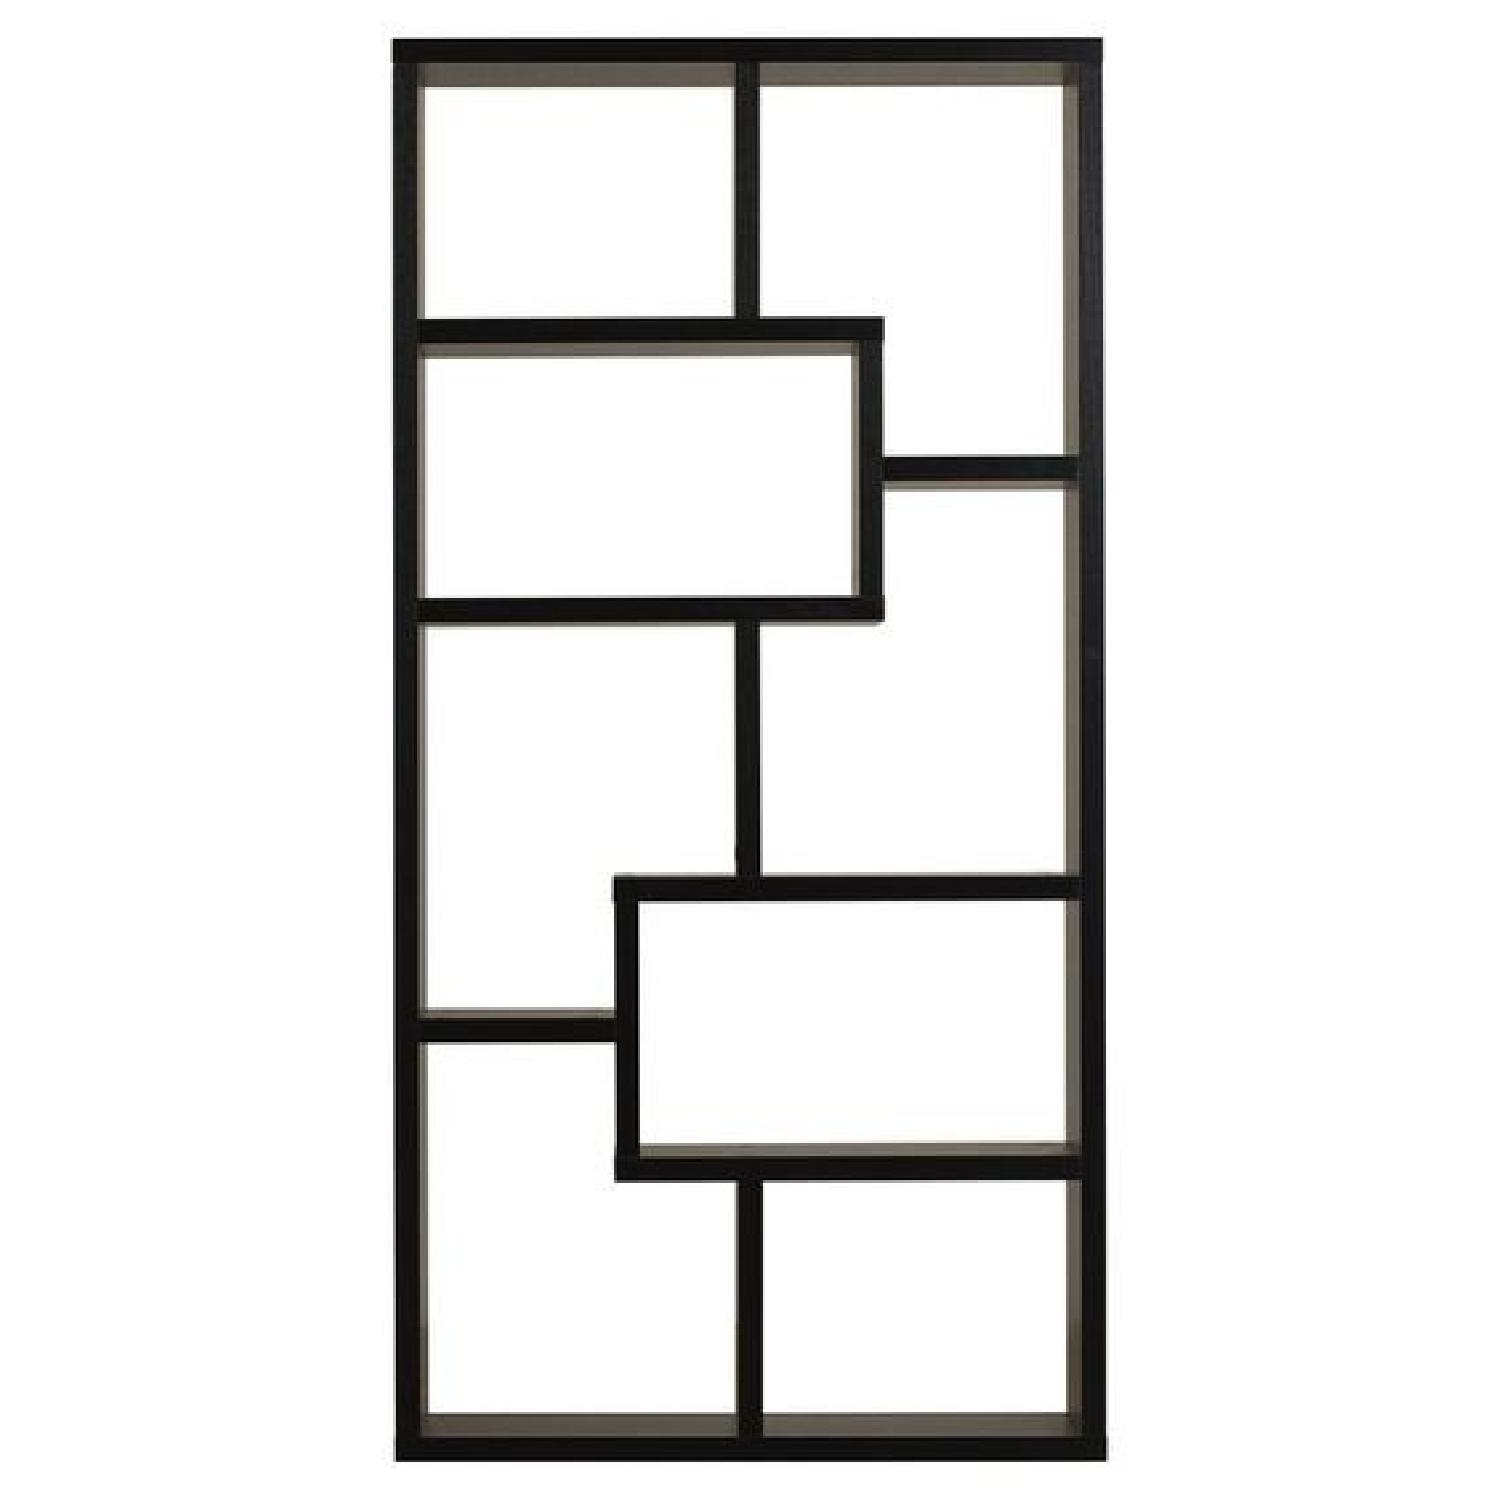 Joss & Main Chrysanthos Black Geometric Bookcase